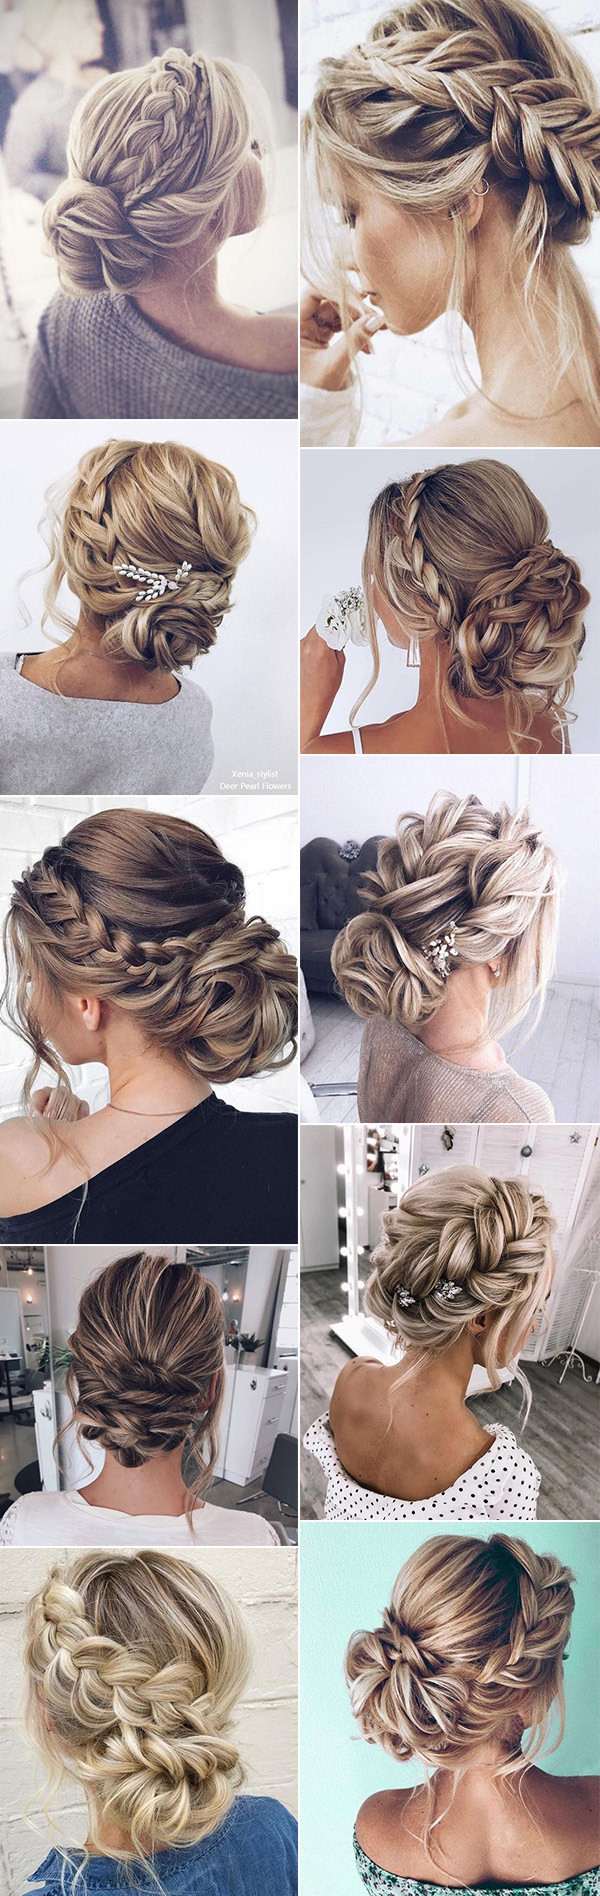 stunning braided updo wedding hairstyles